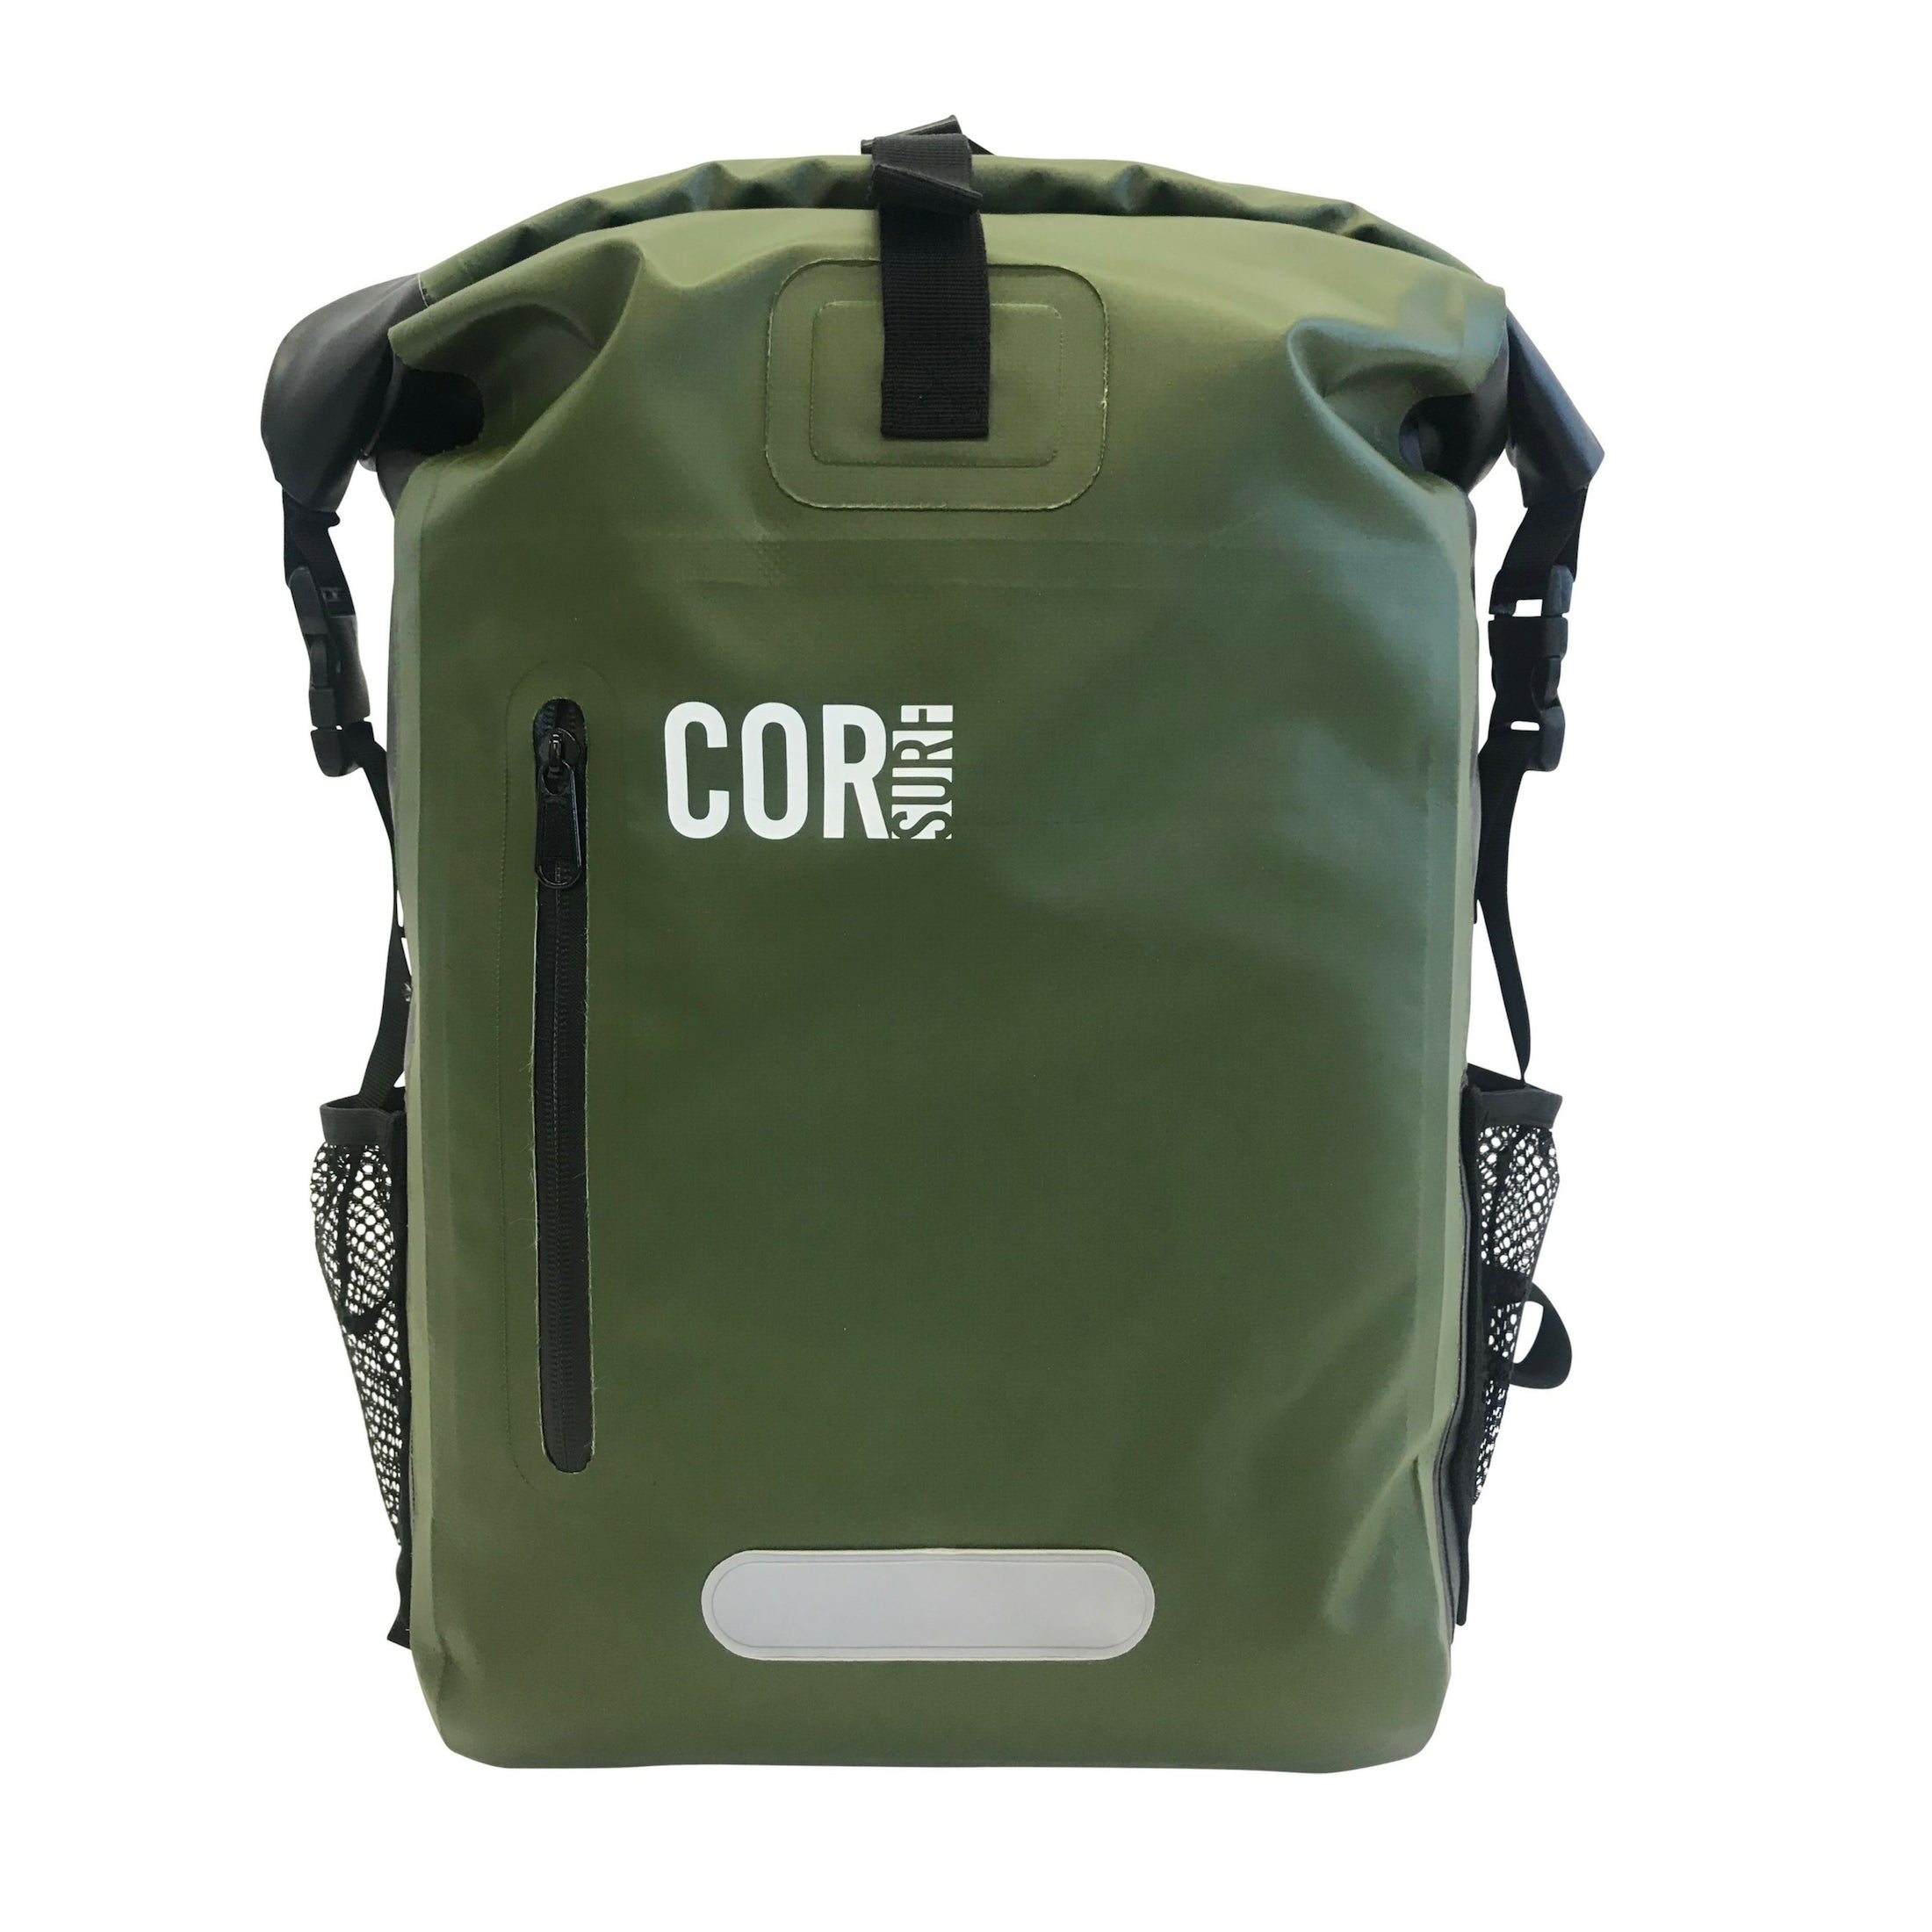 Waterproof Dry Backpack with Laptop Sleeve 25L - NEW 2019! – COR Surf 2e3c15f5e0d13